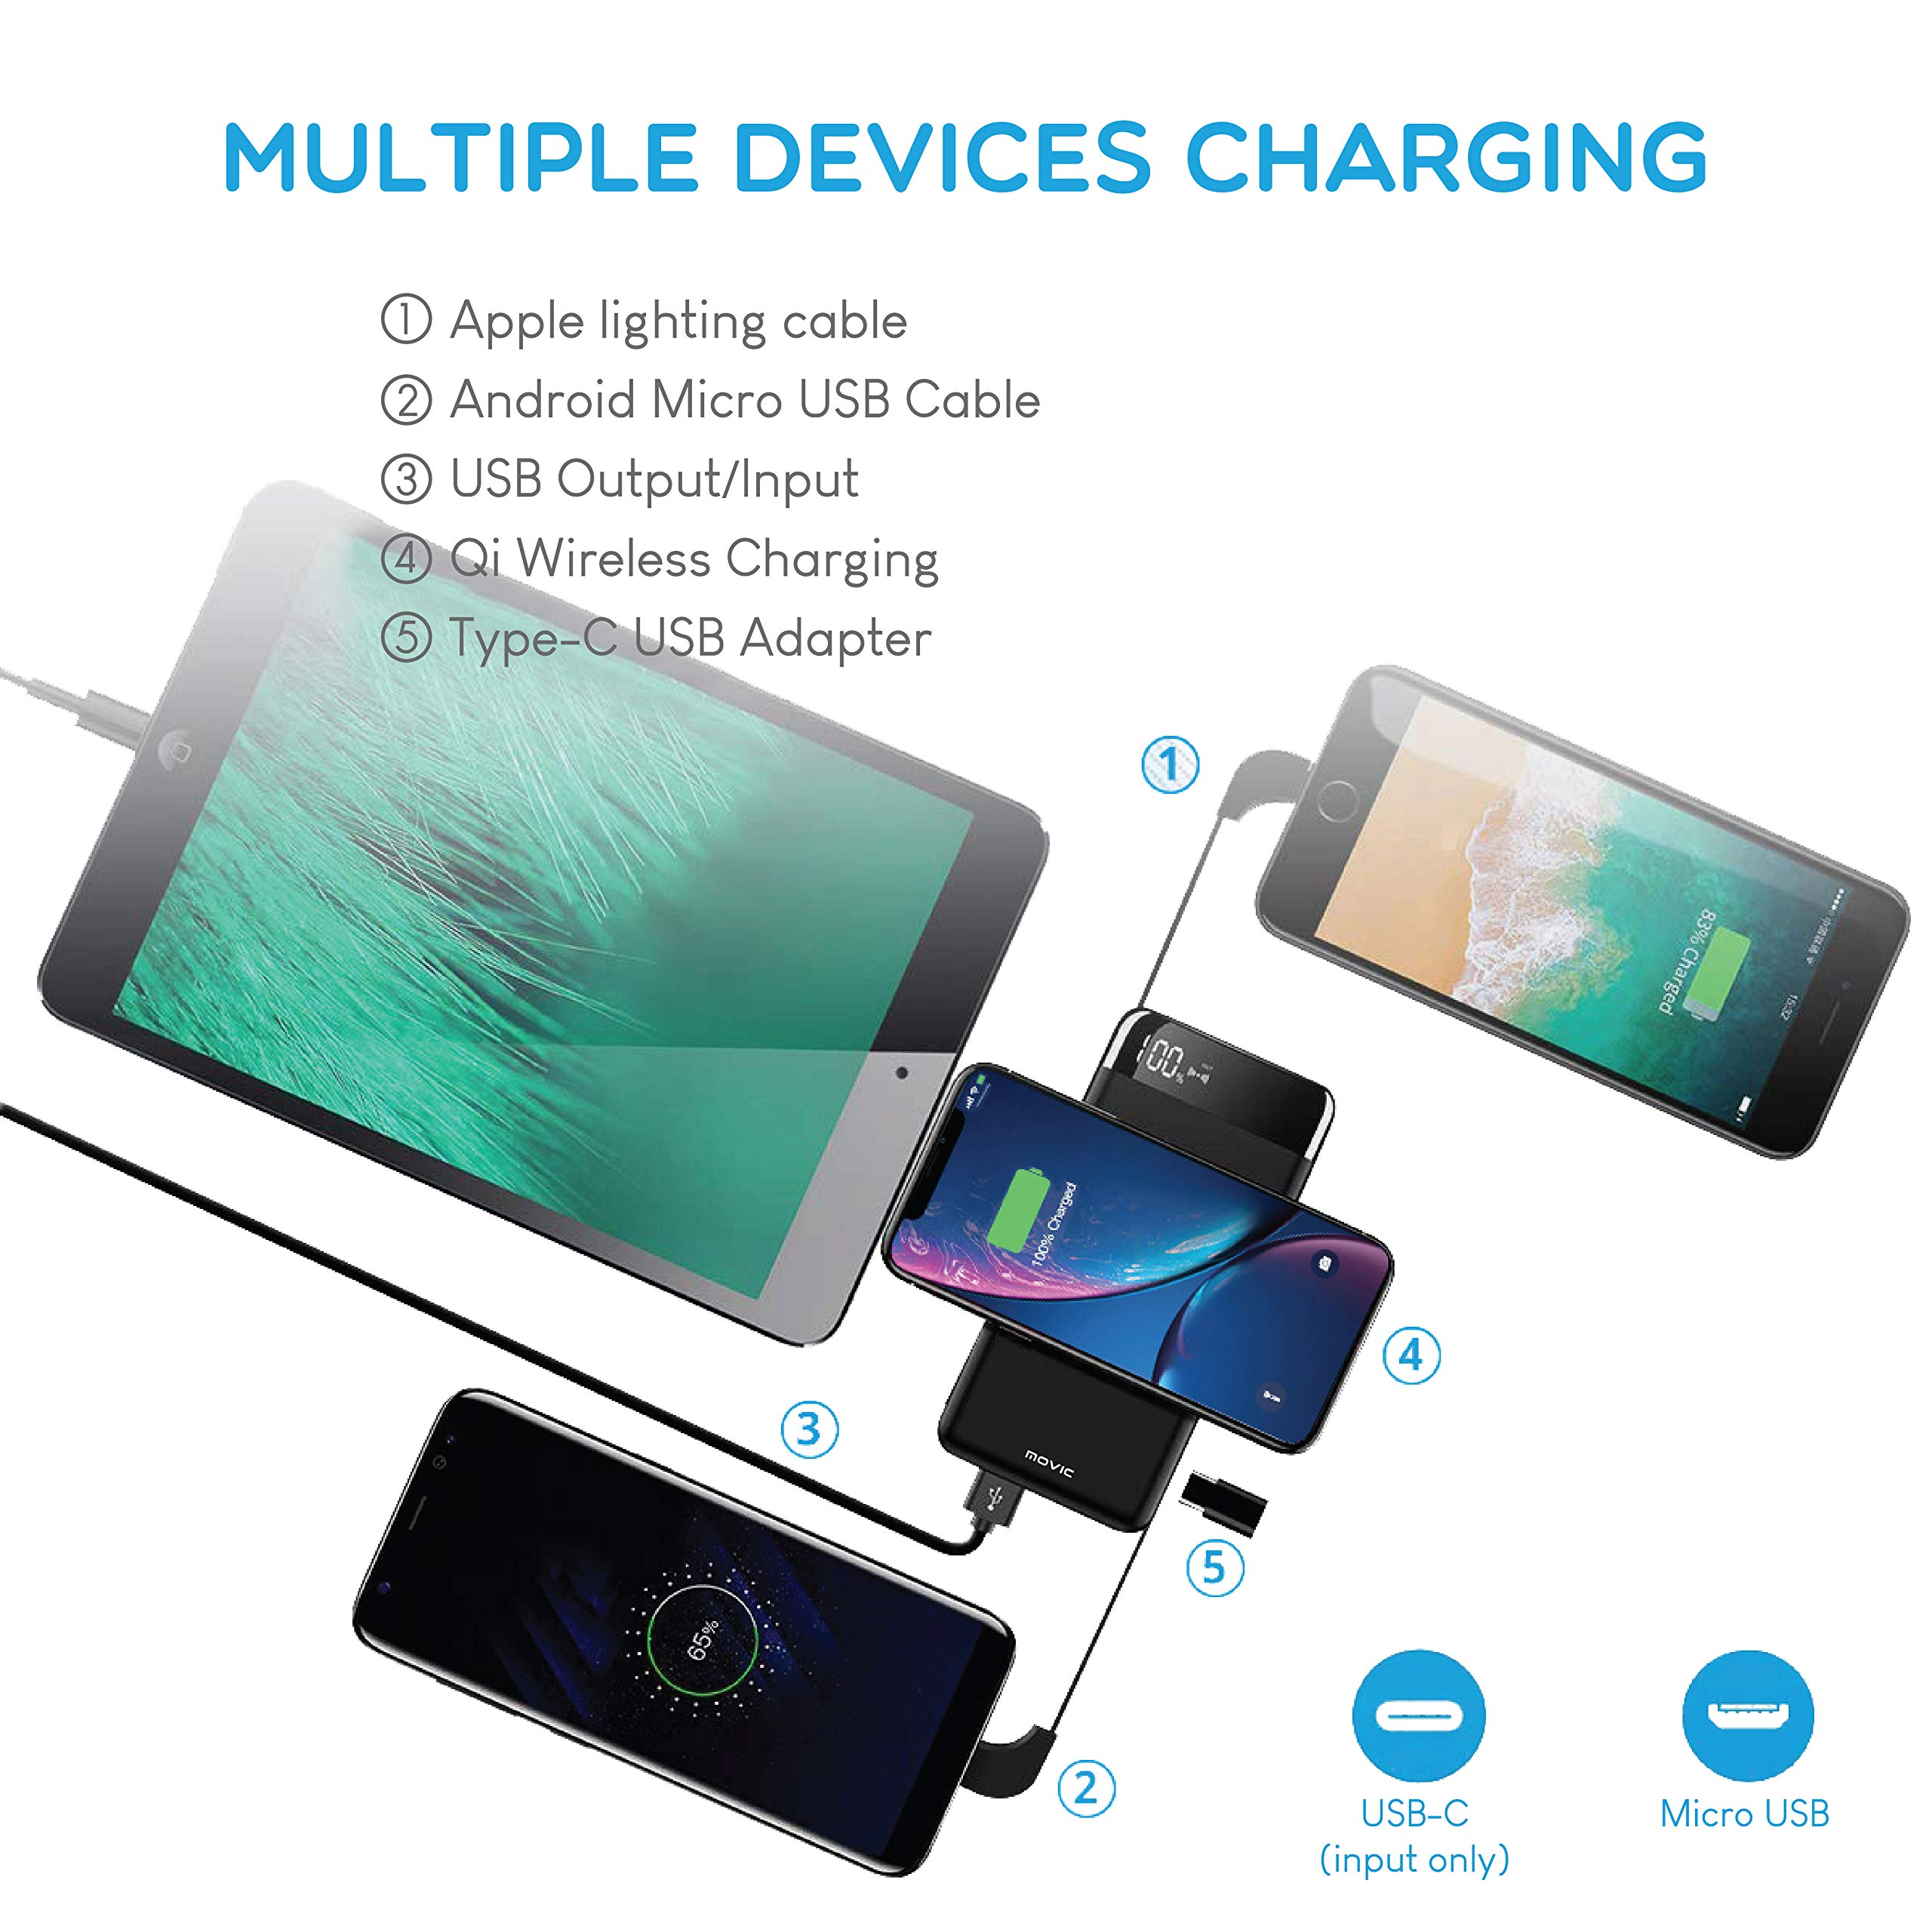 Movic Wireless Portable Charger 10000 mAh Power Bank (Qi-Certified) with QC 2.0 Fast Charge + LCD Display + Lighting Cable + Type-C Adaptor, External Battery Pack for iPhone, Samsung, Pixel (Black)